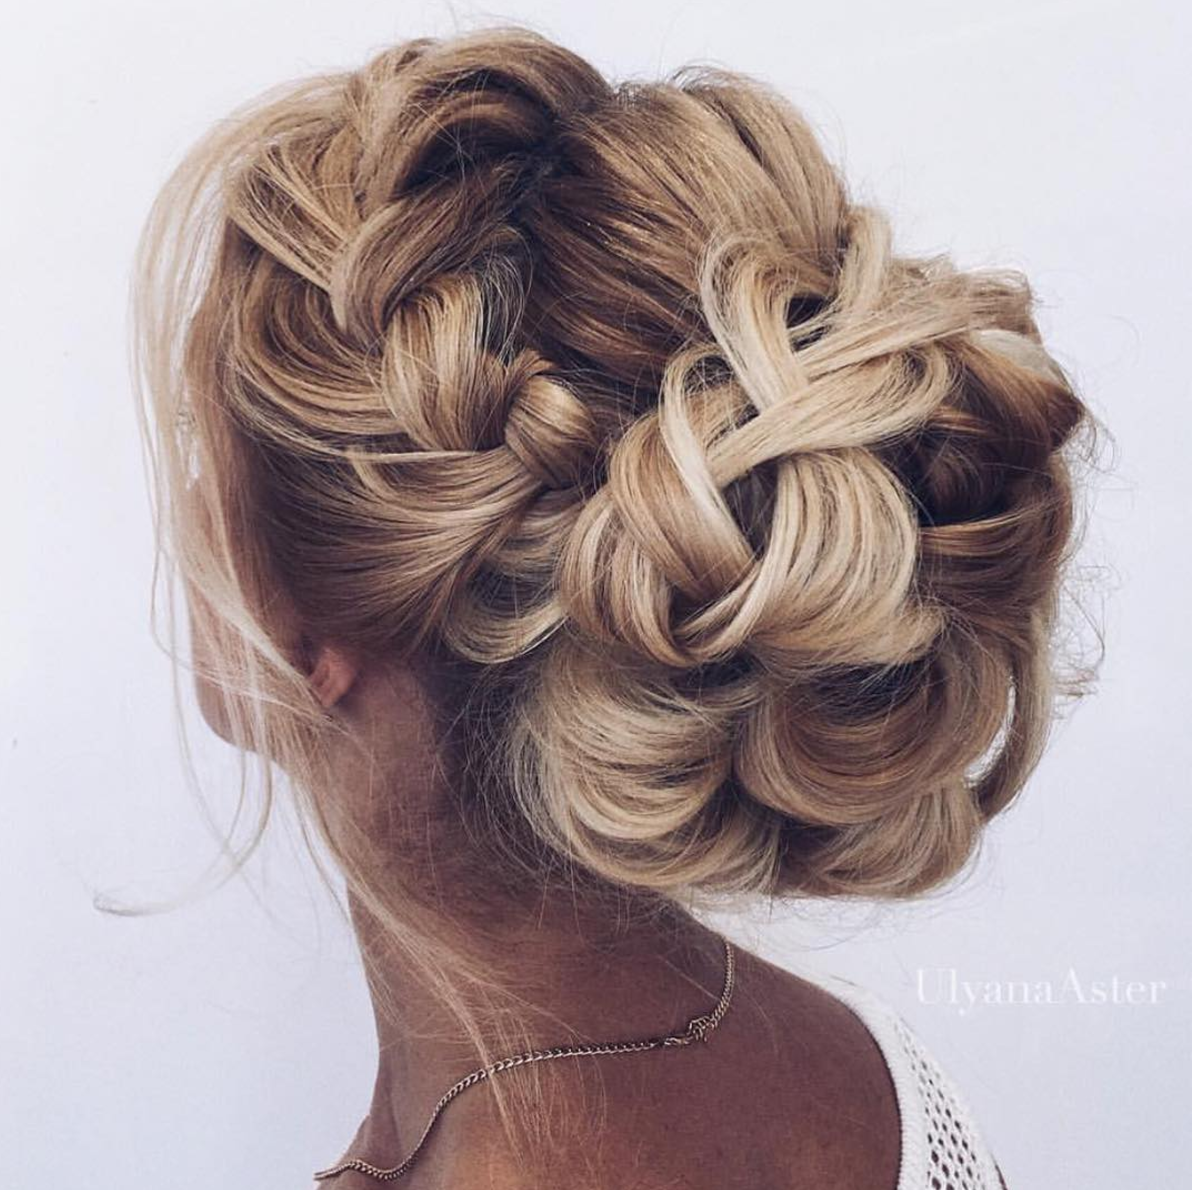 Gorgeous braided wedding hairstyles for a romantic big day look